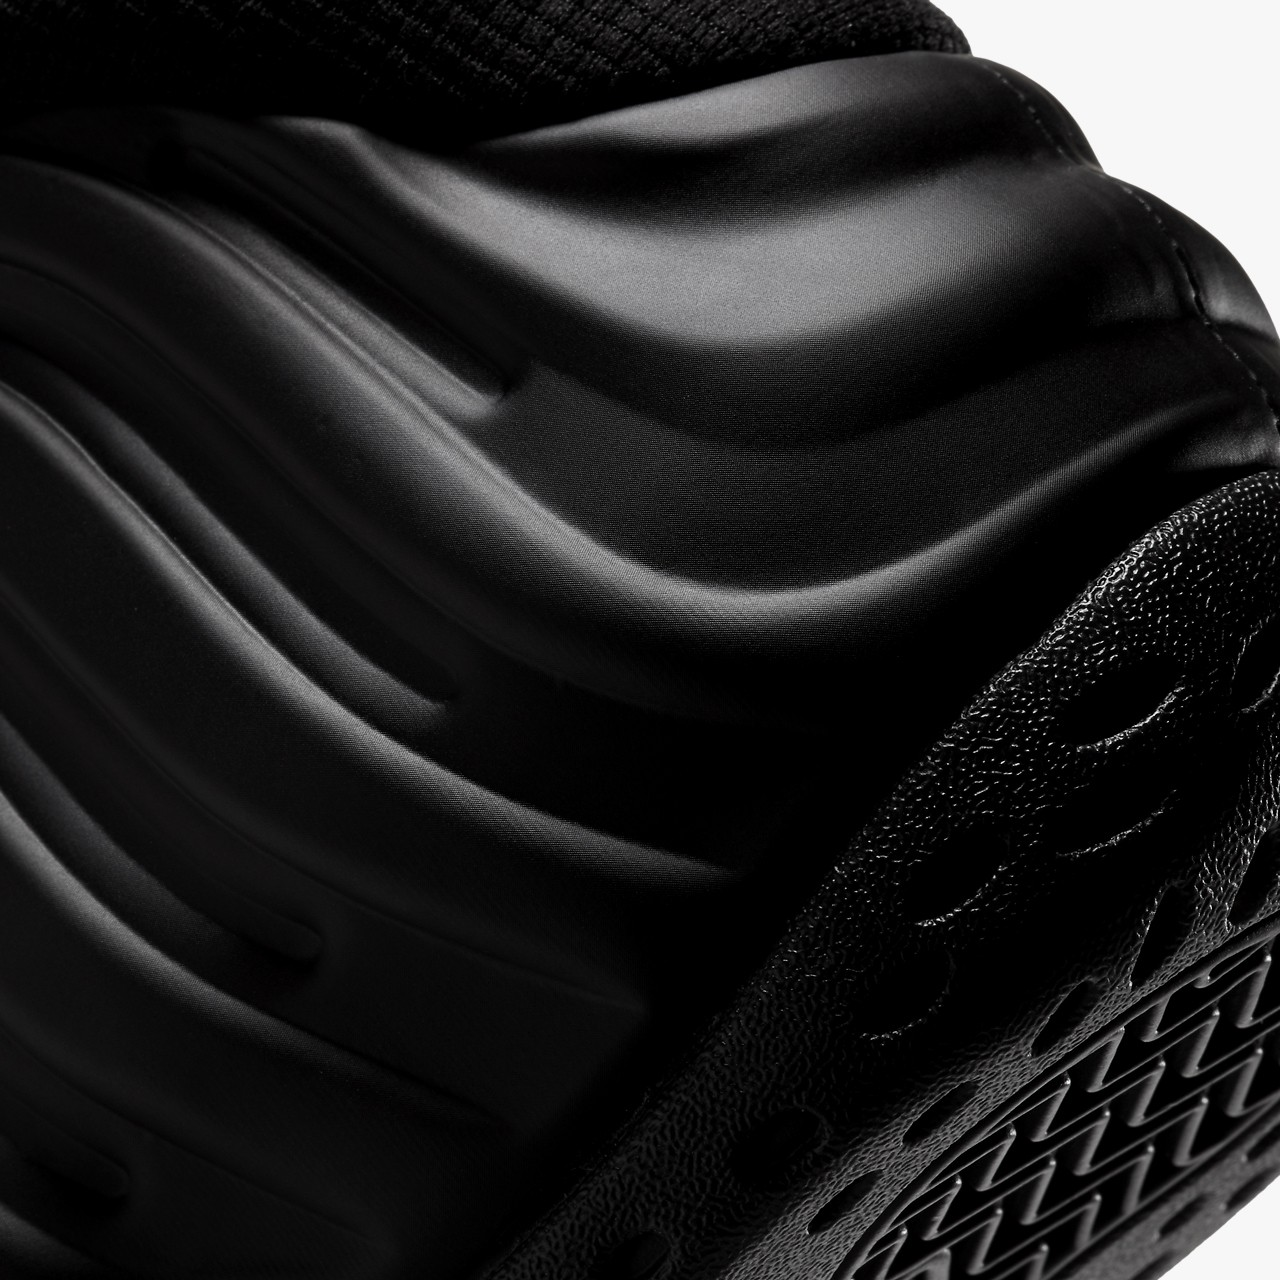 foamposites 2012 new shoes Air Foamposite One NRG Royal ...